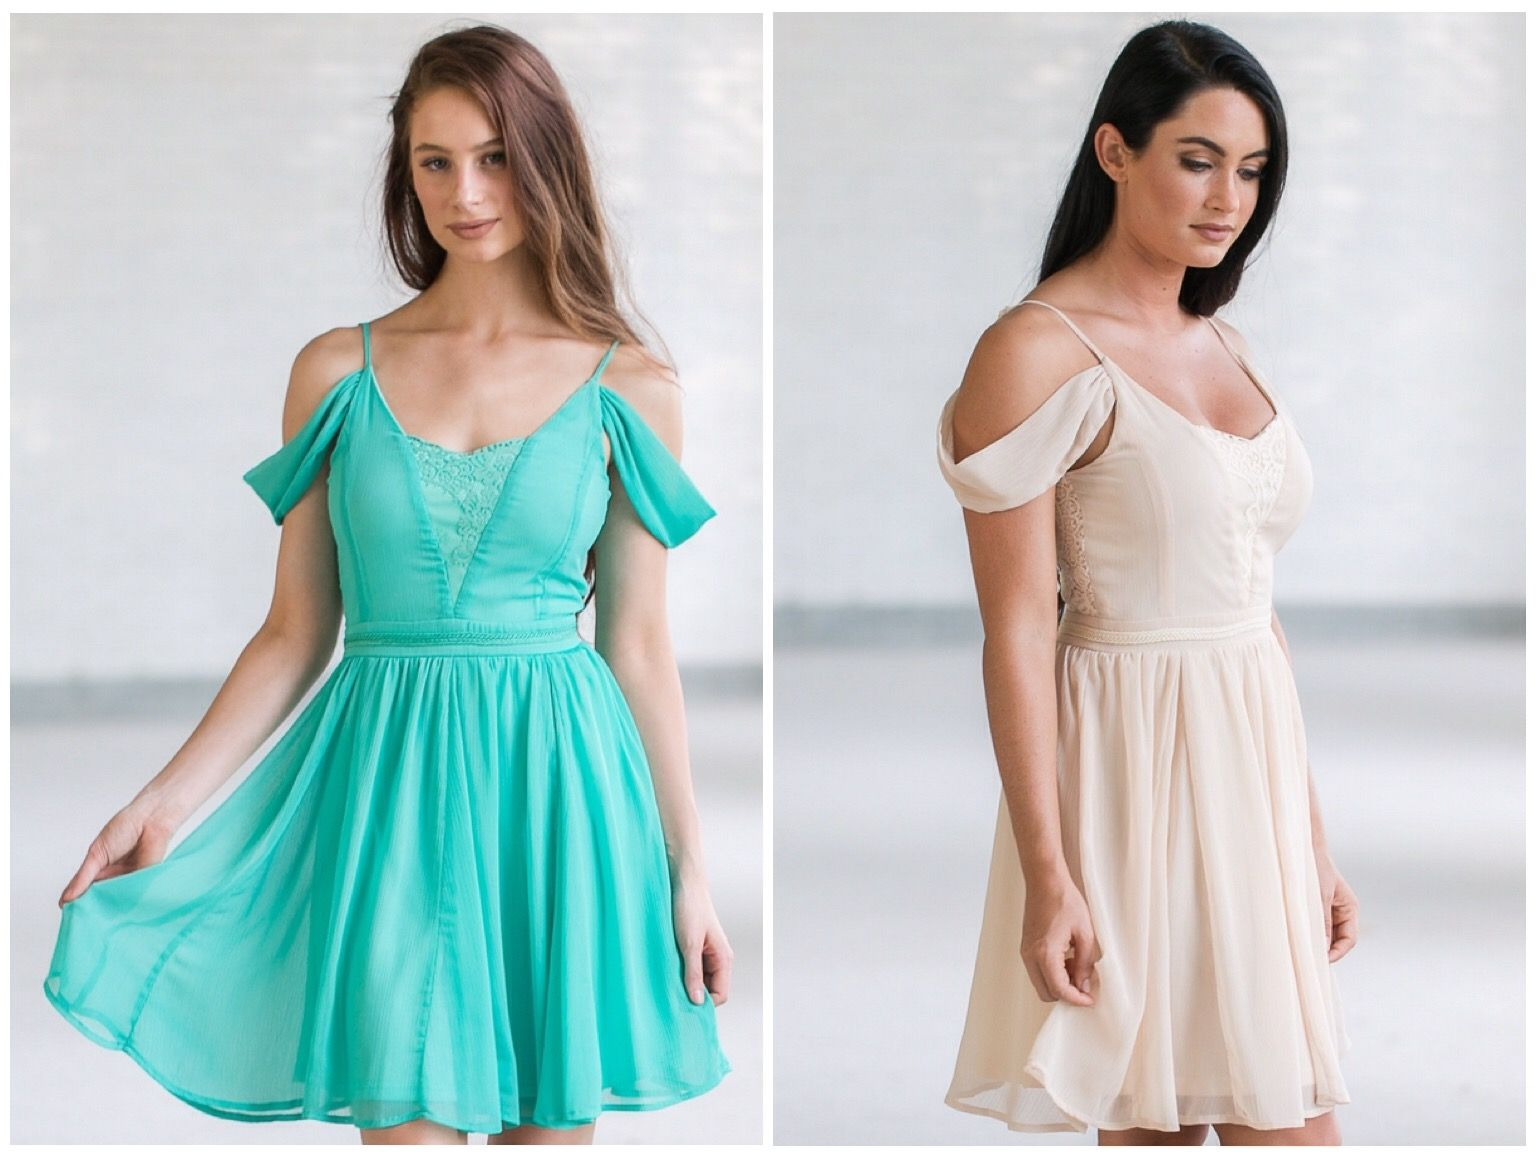 Contemporary Where To Buy Cute Party Dresses Images - All Wedding ...